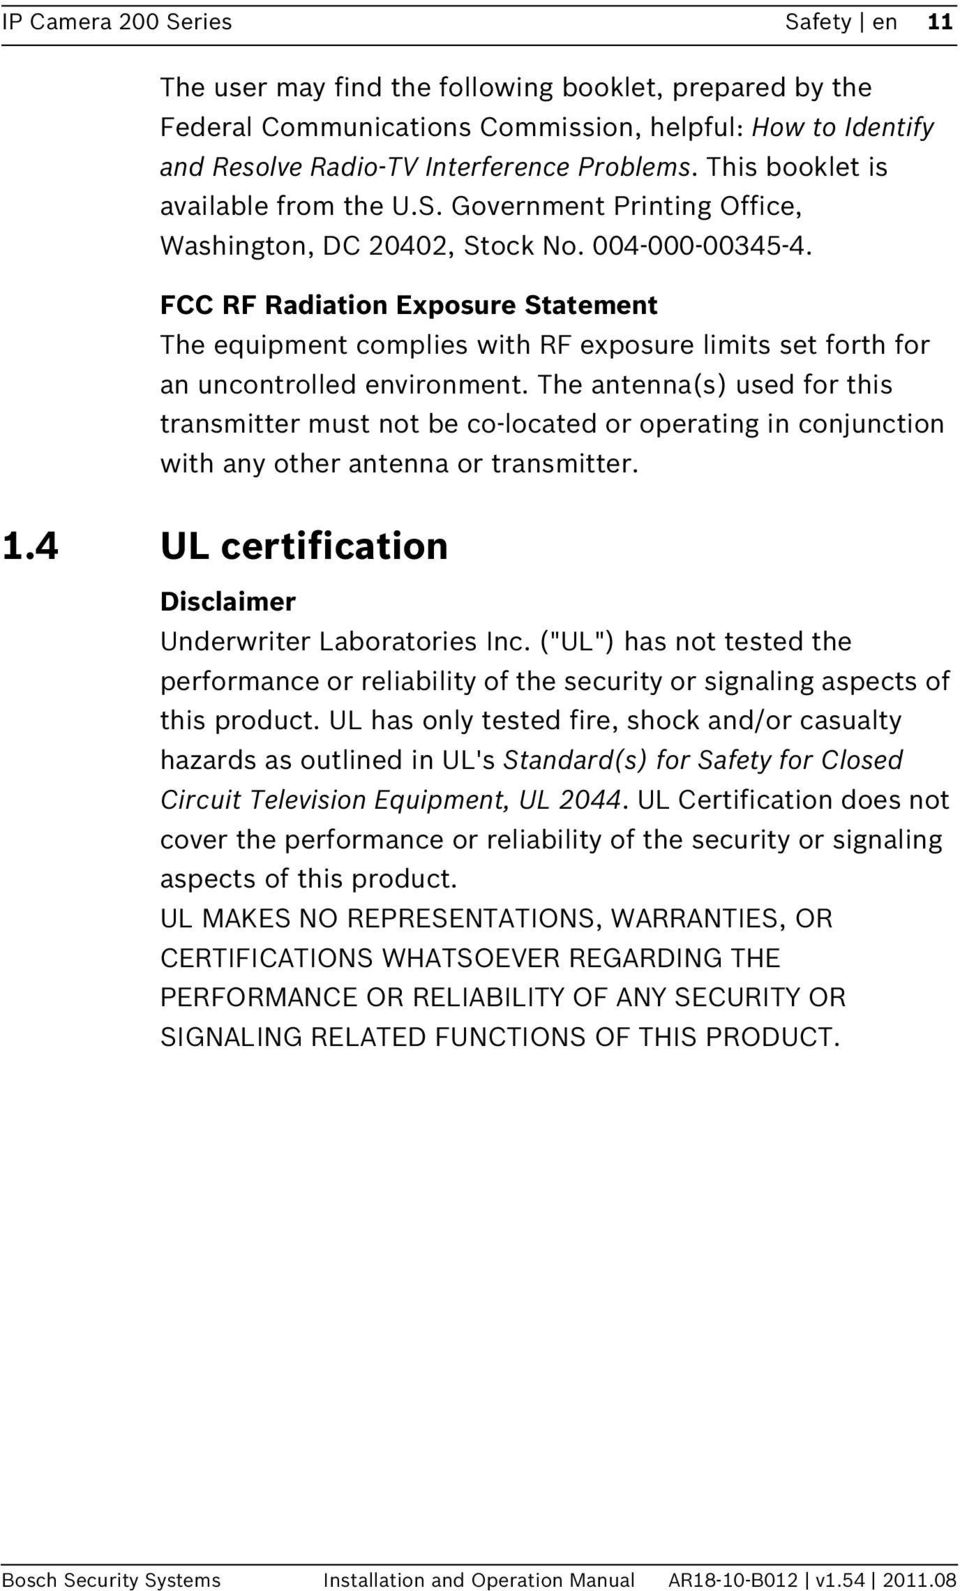 FCC RF Radiation Exposure Statement The equipment complies with RF exposure limits set forth for an uncontrolled environment.